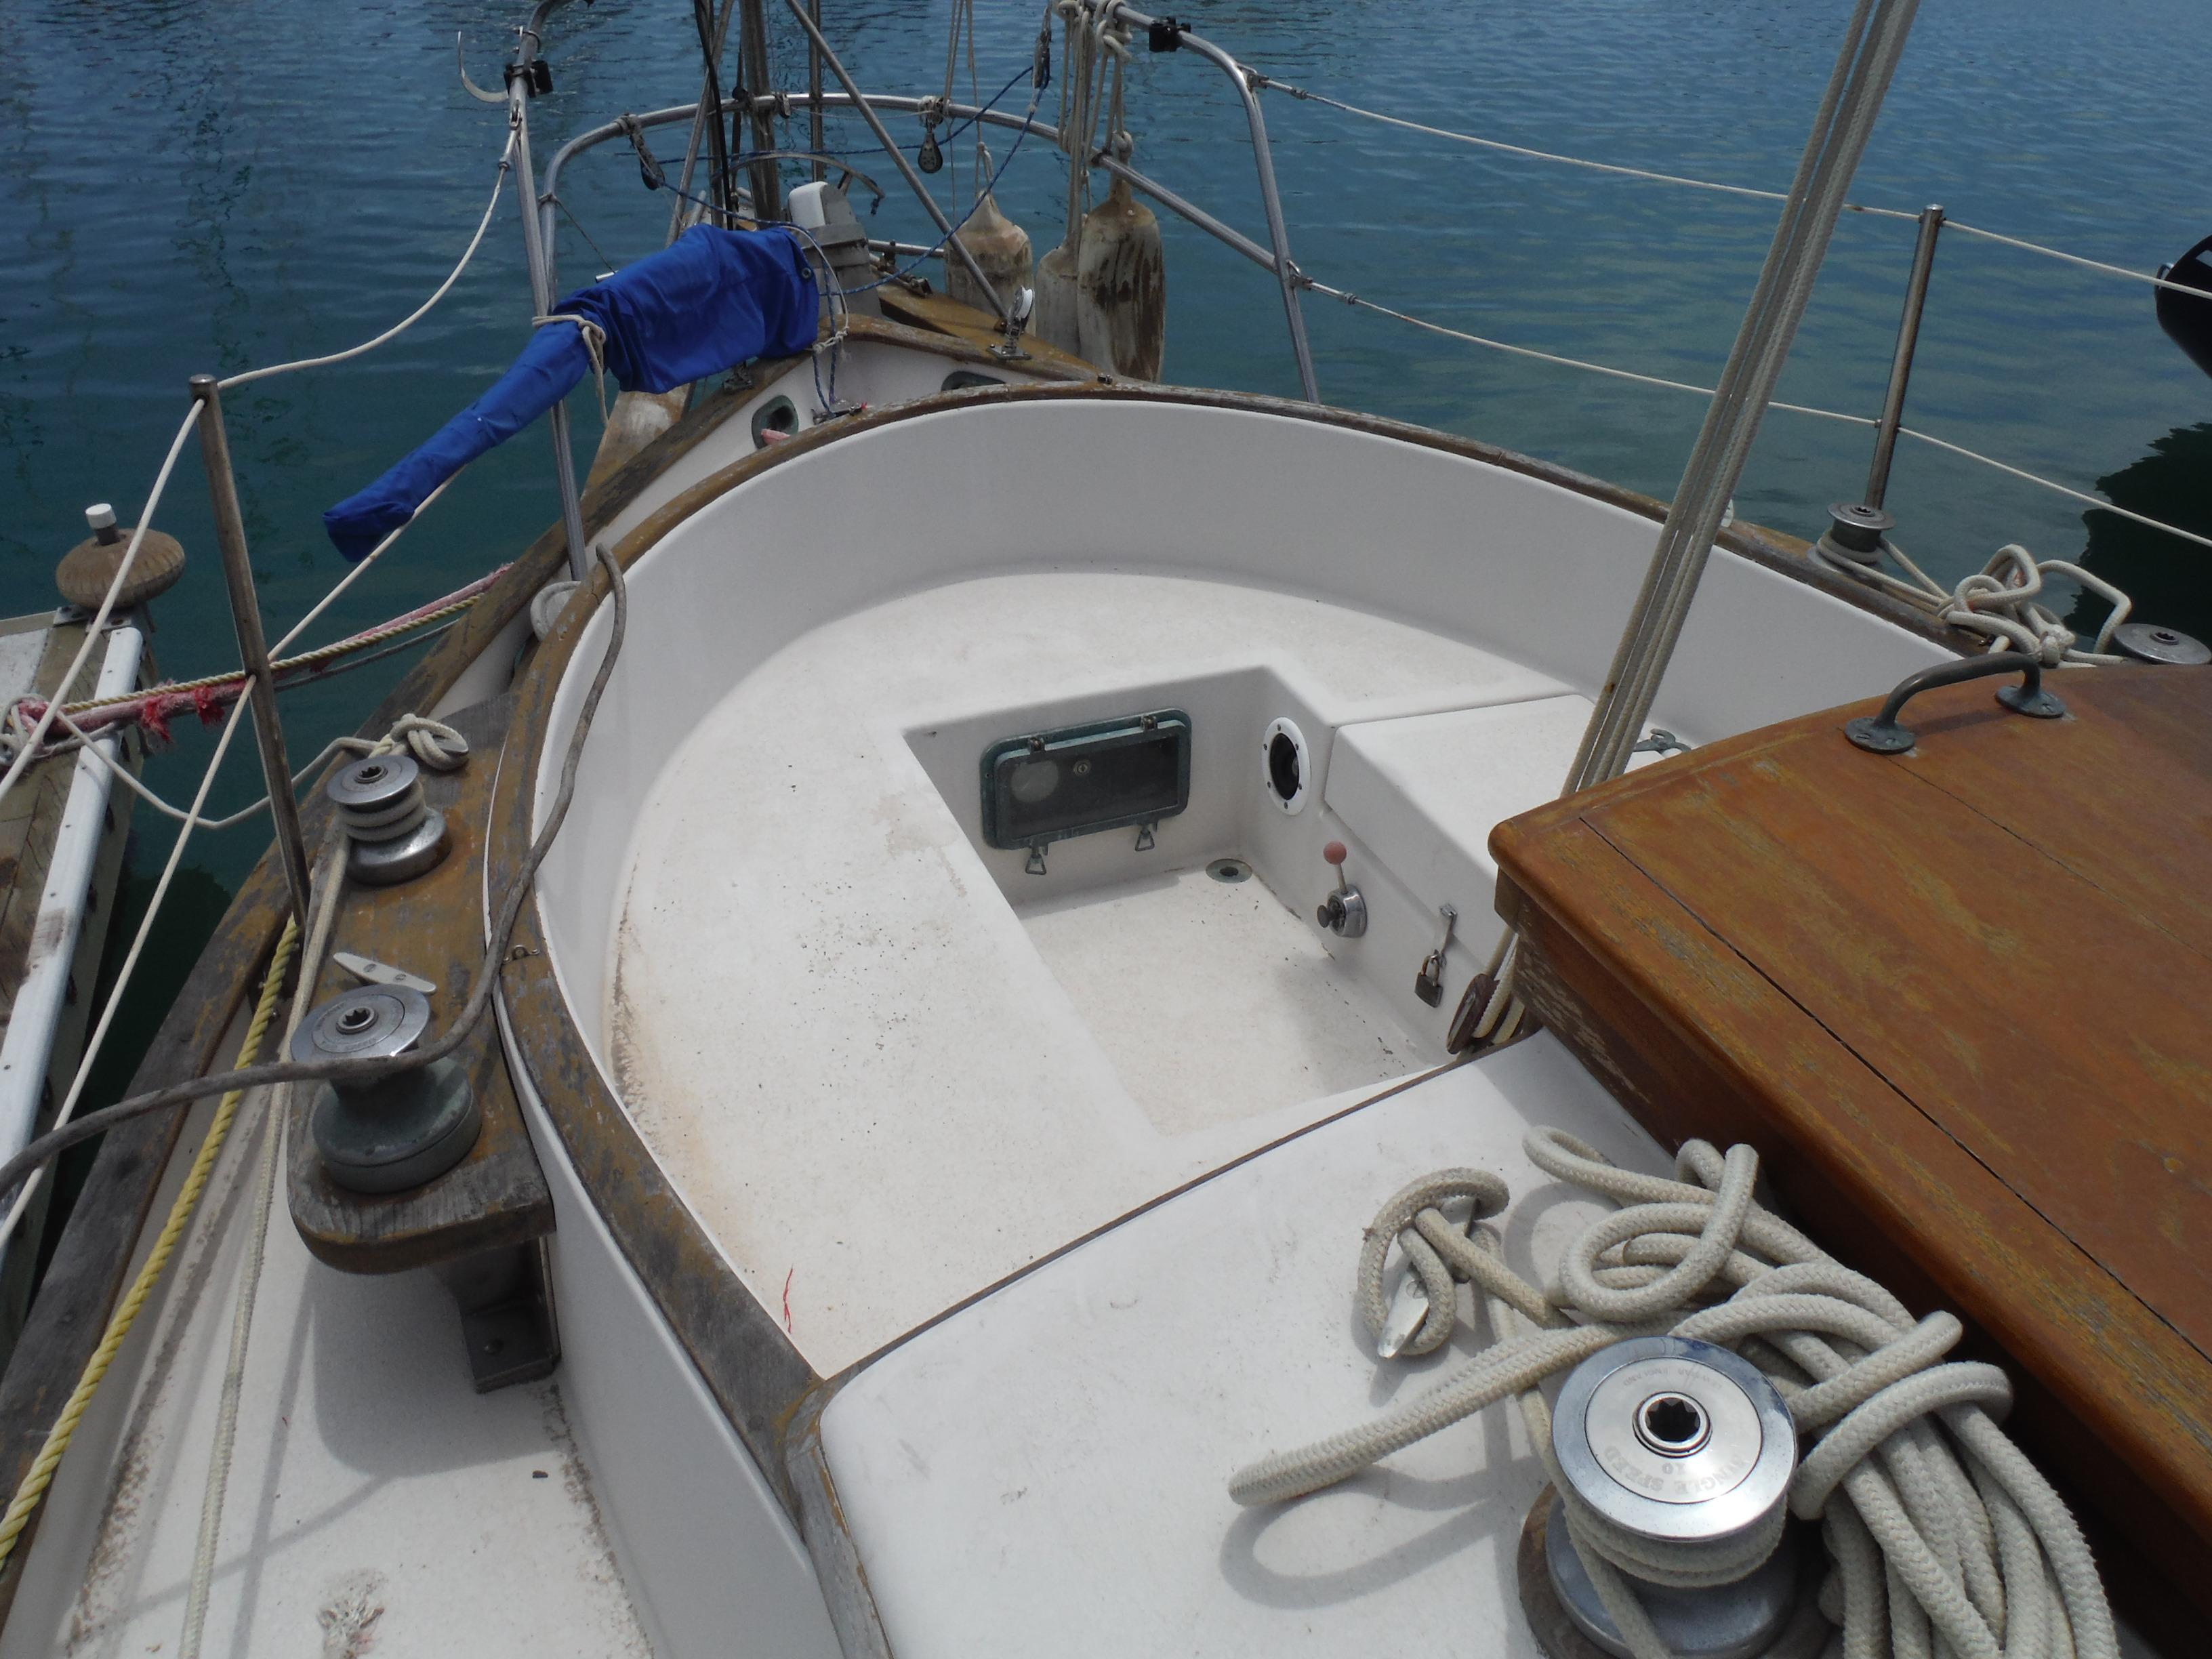 34' Noon Ocean 34 Cutter+Photo 12